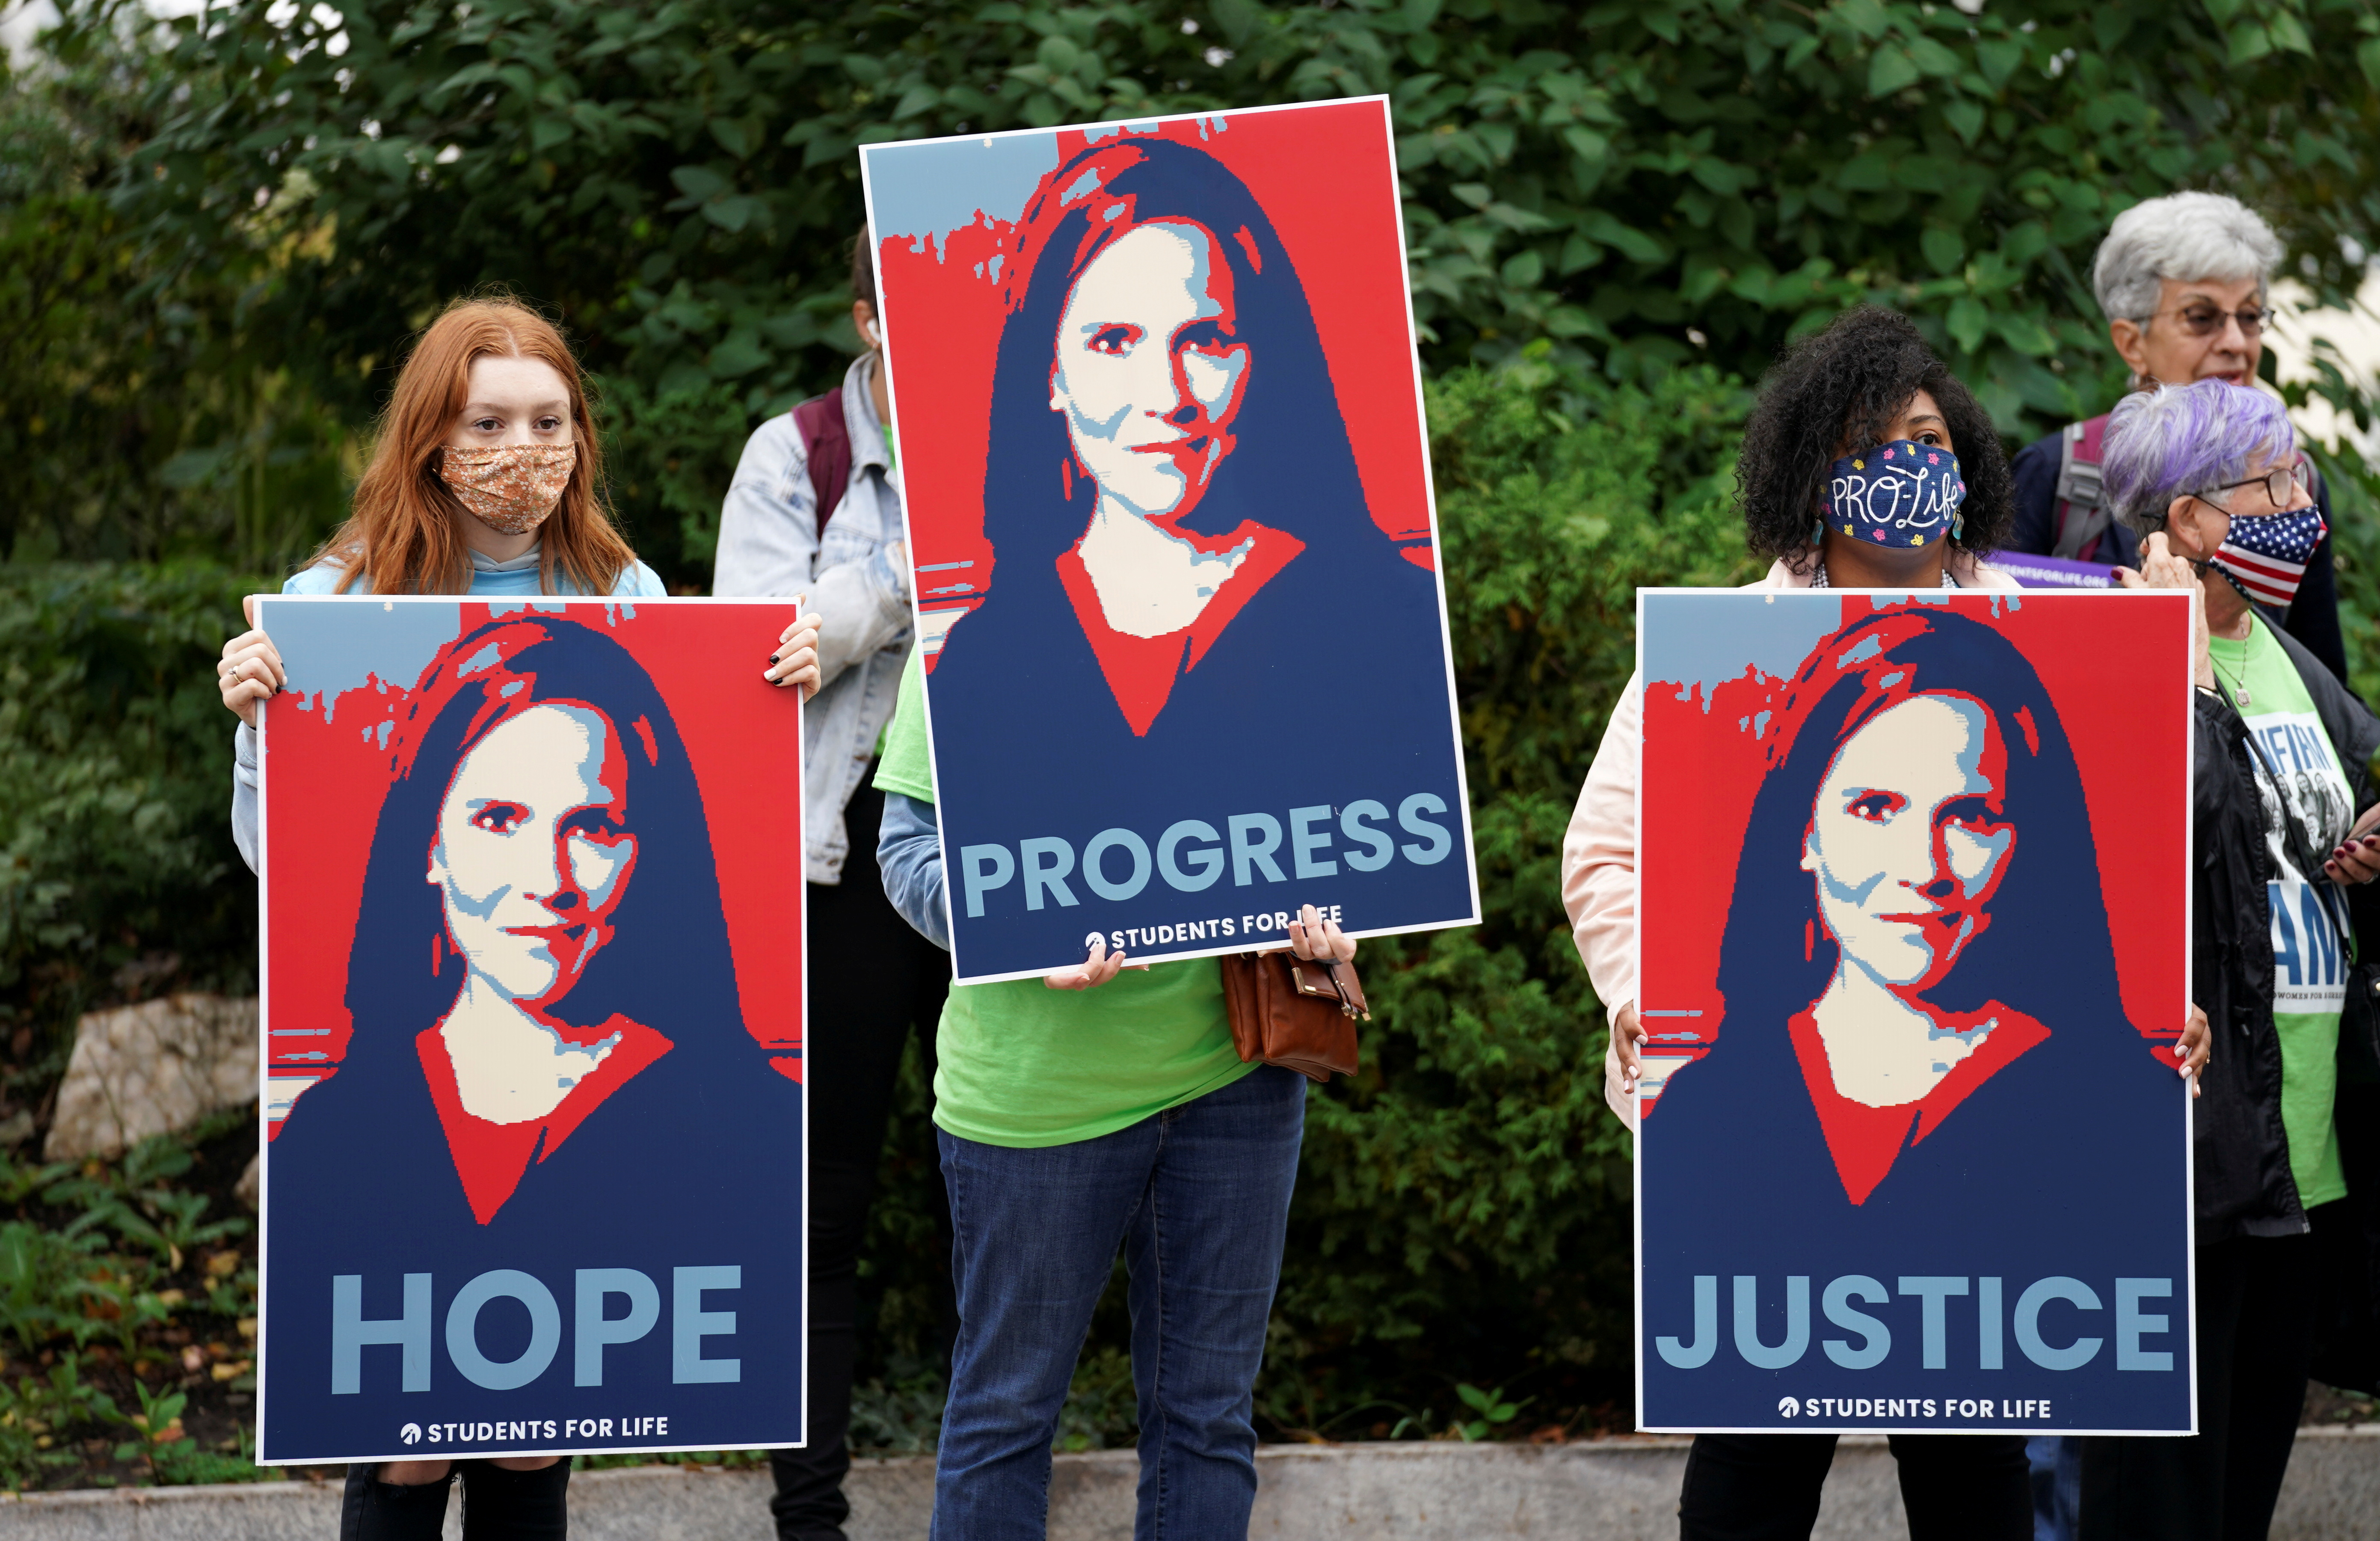 Demonstrators hold signs at the U.S. Capitol supporting the Senate Judiciary Committee hearing of U.S. Supreme Court nominee Judge Amy Coney Barrett in Washington.  REUTERS/Kevin Lamarque